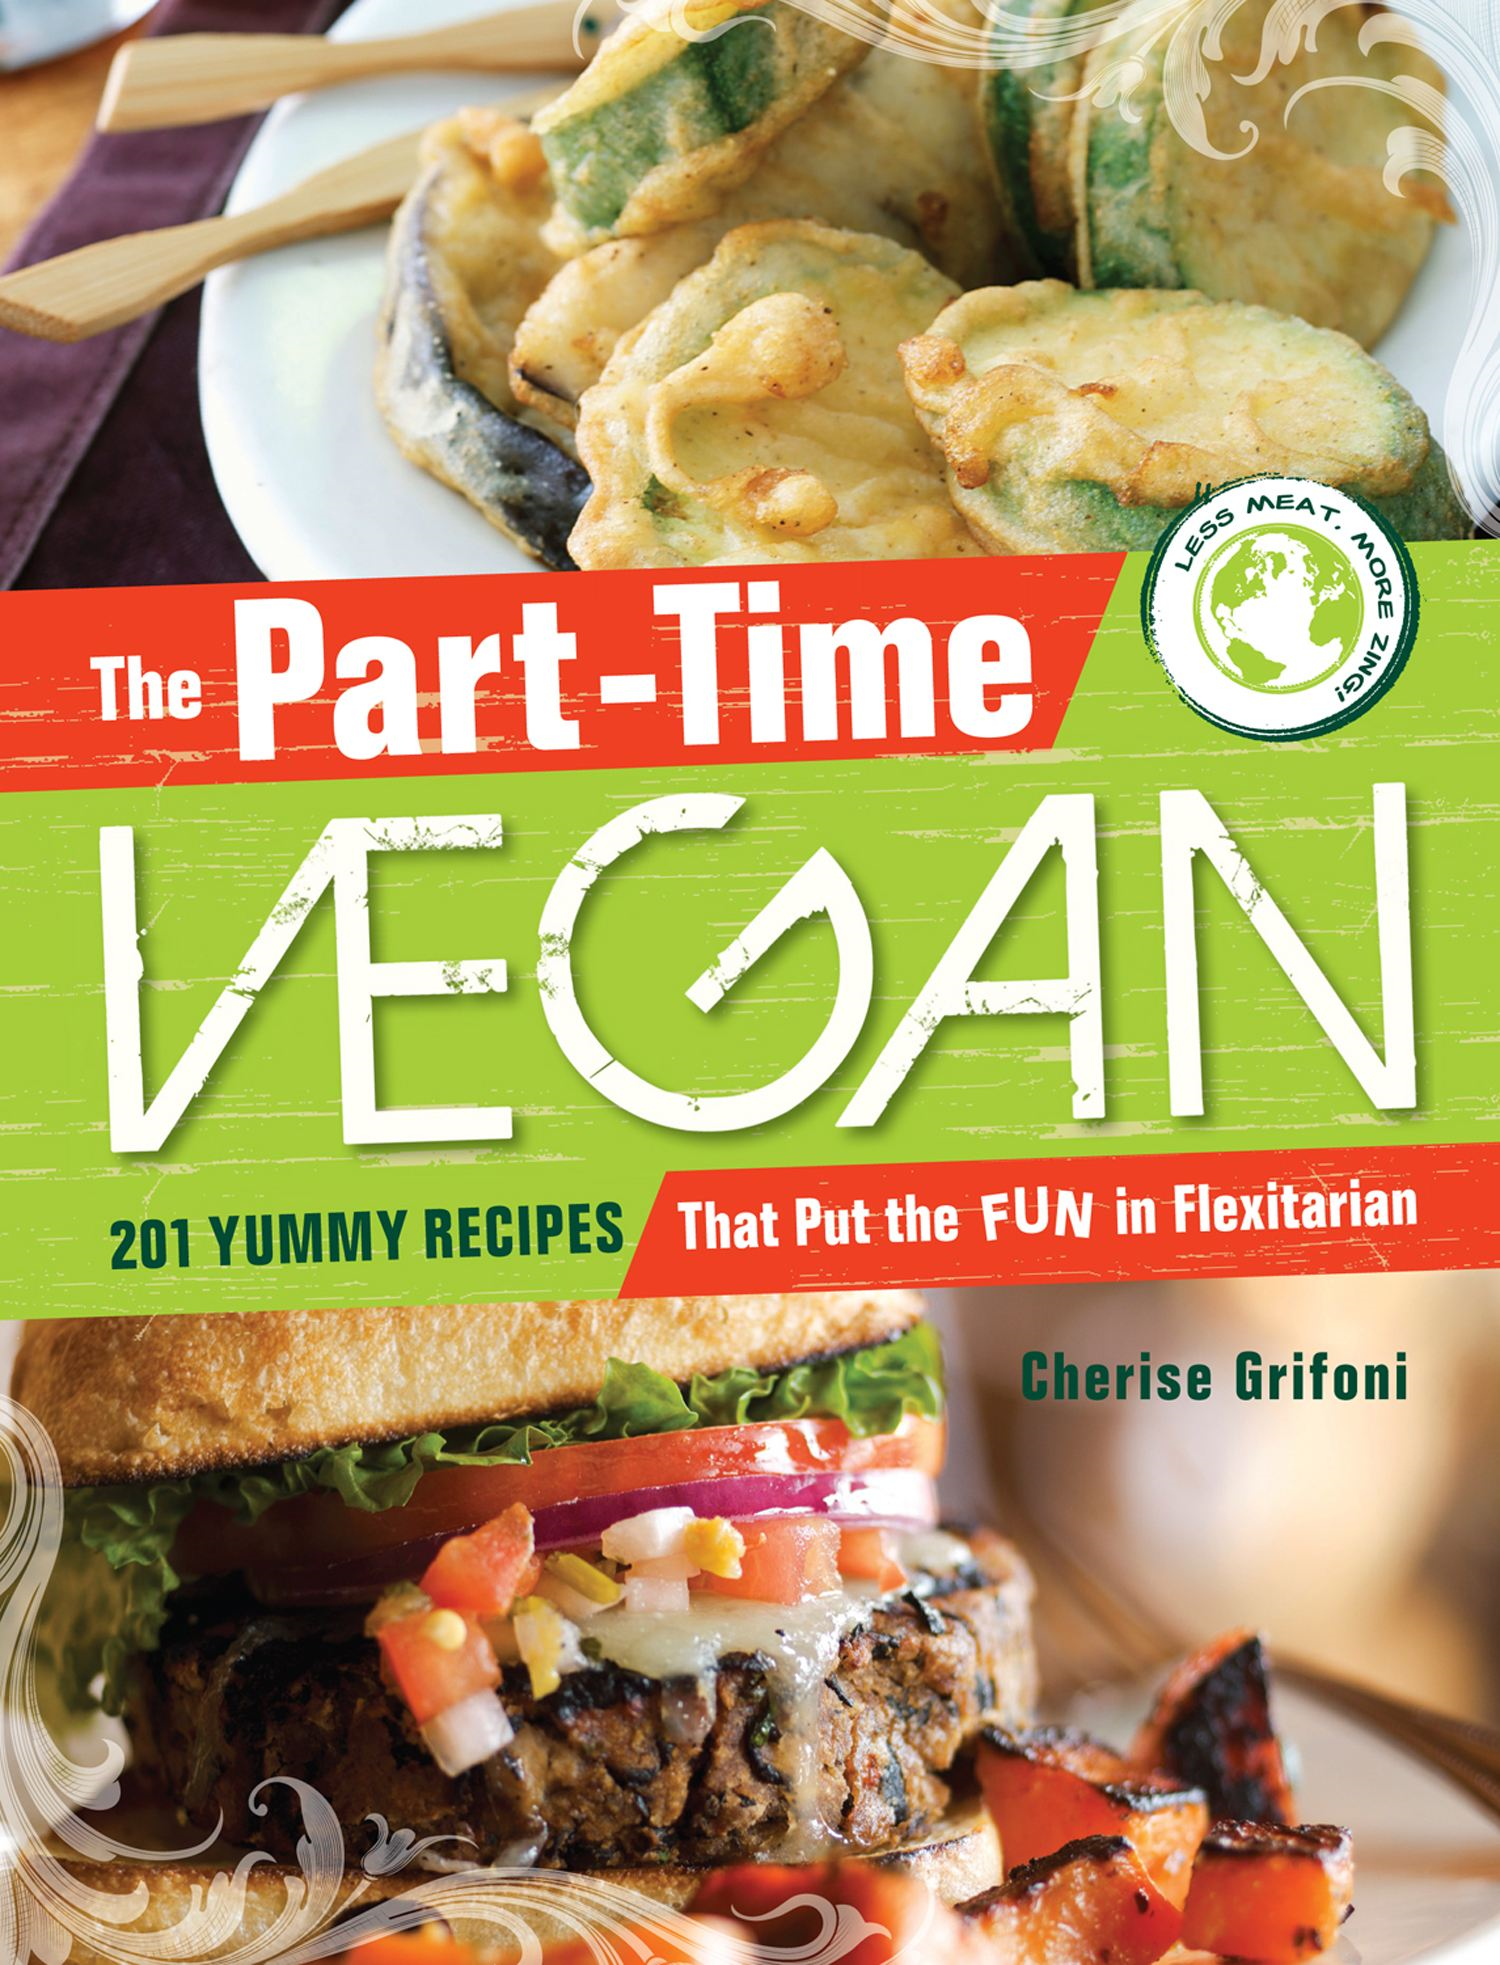 The PartTime Vegan: 201 Yummy Recipes that Put the Fun in Flexitarian